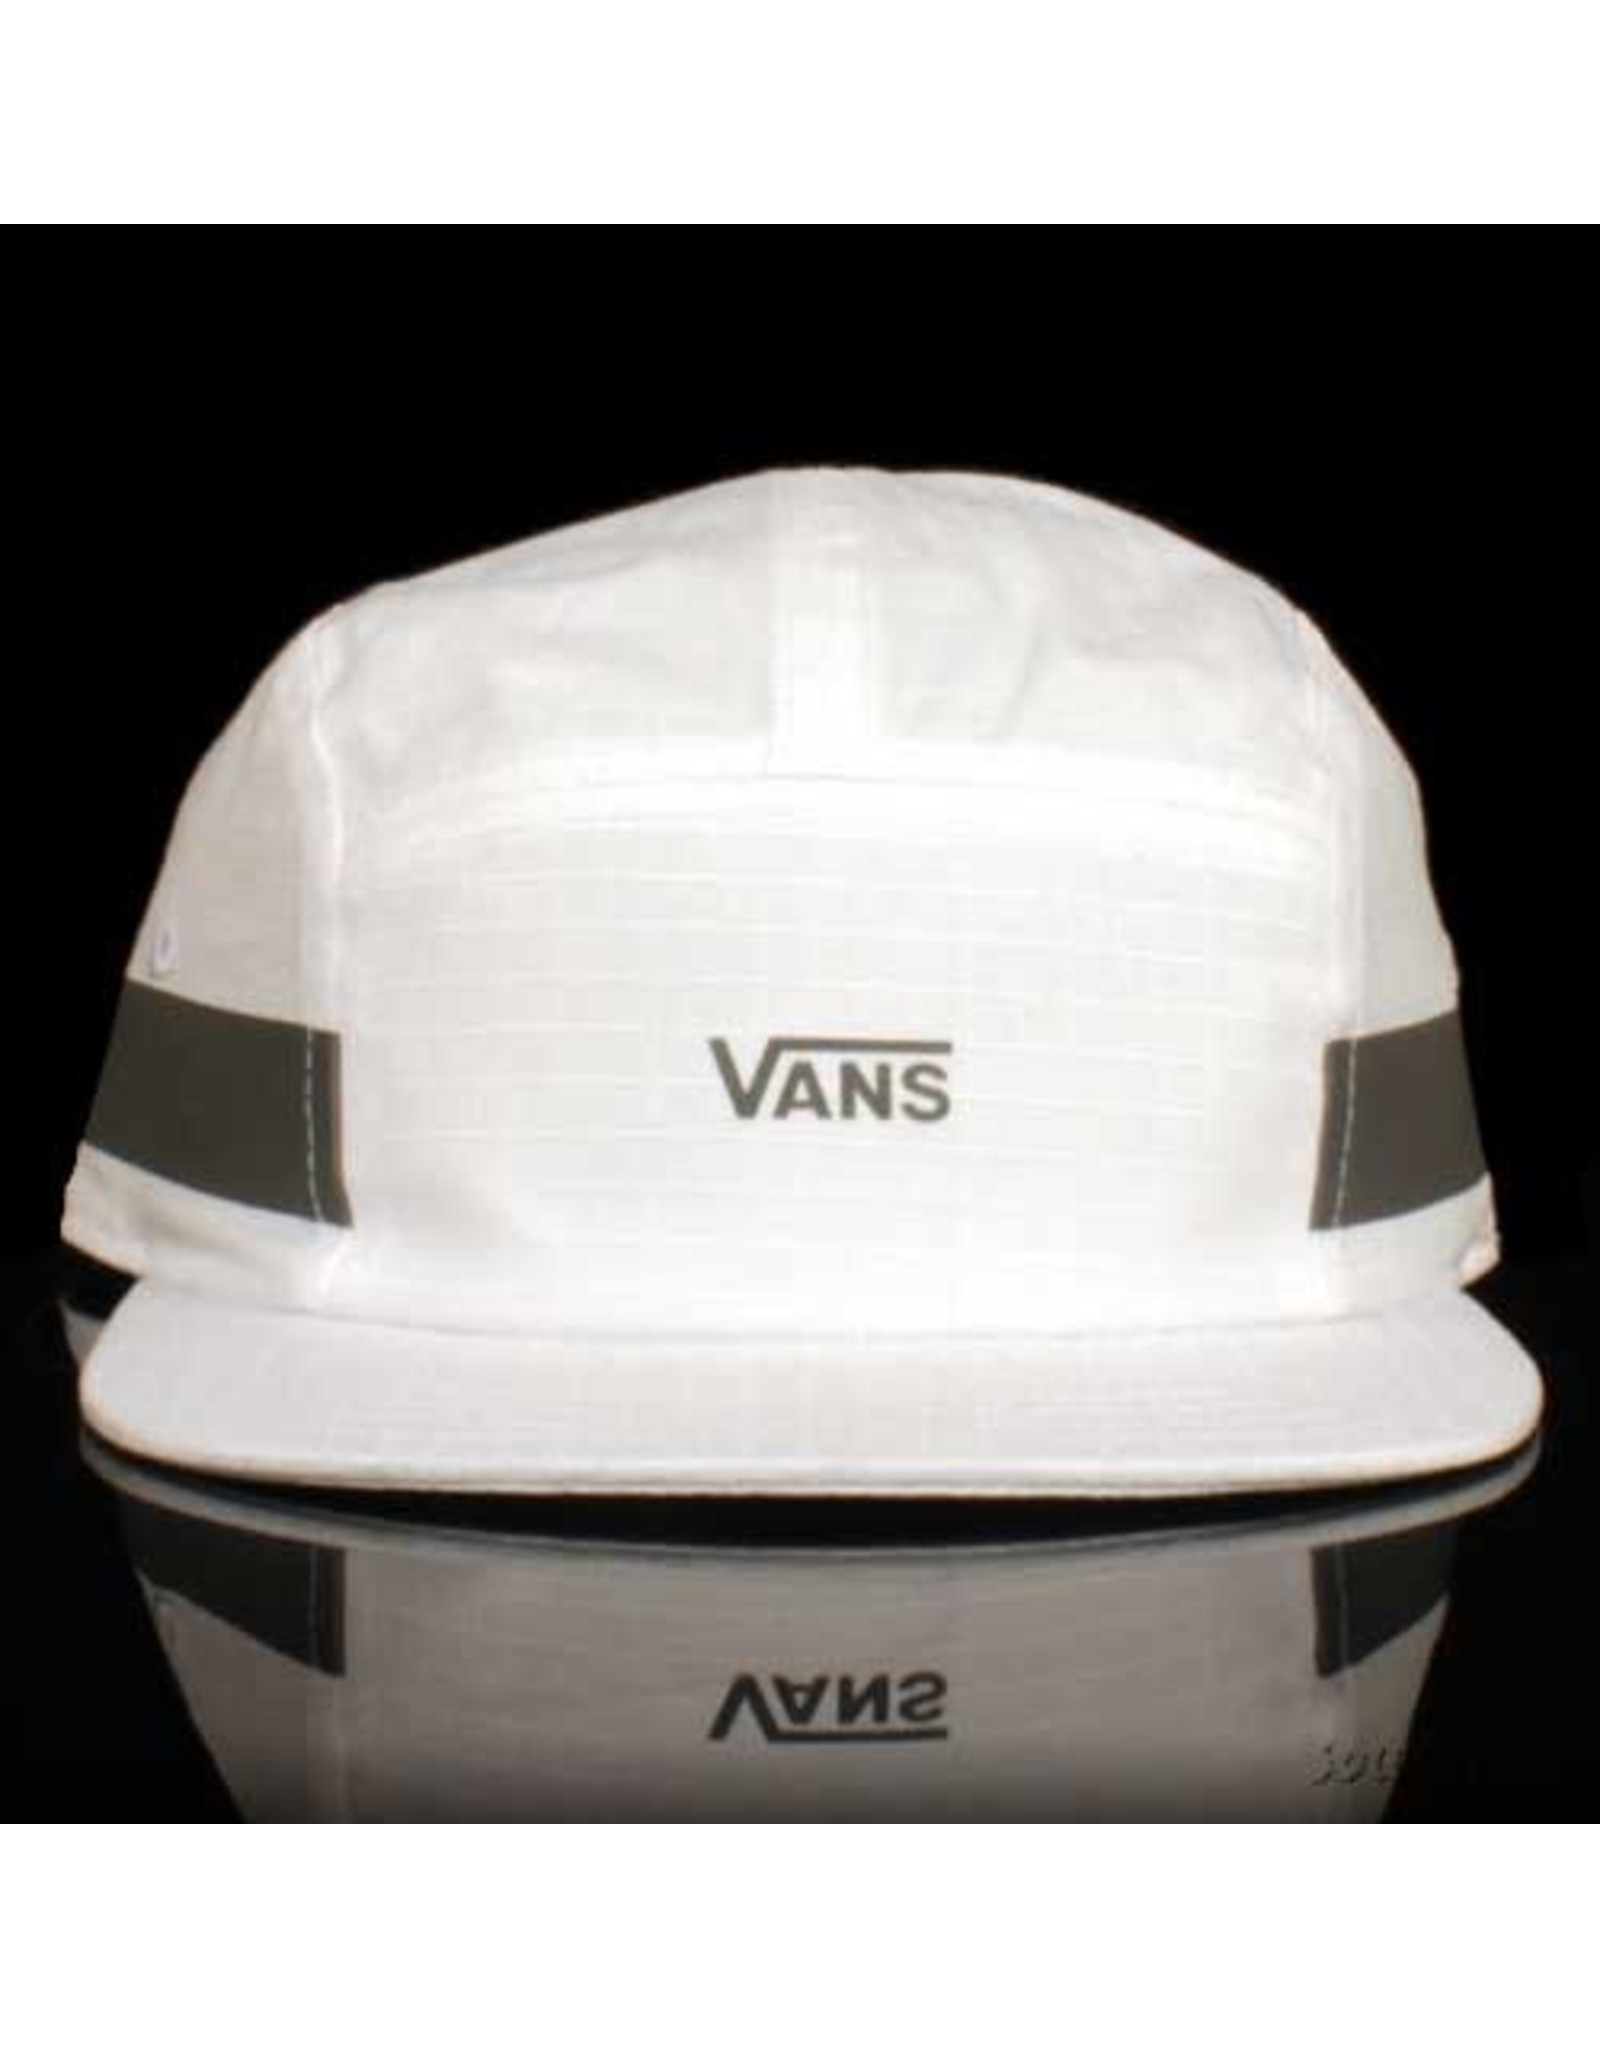 VANS Vans Hat Obstacle Camper 5 Panel Strapback with Reflective White Ripstop